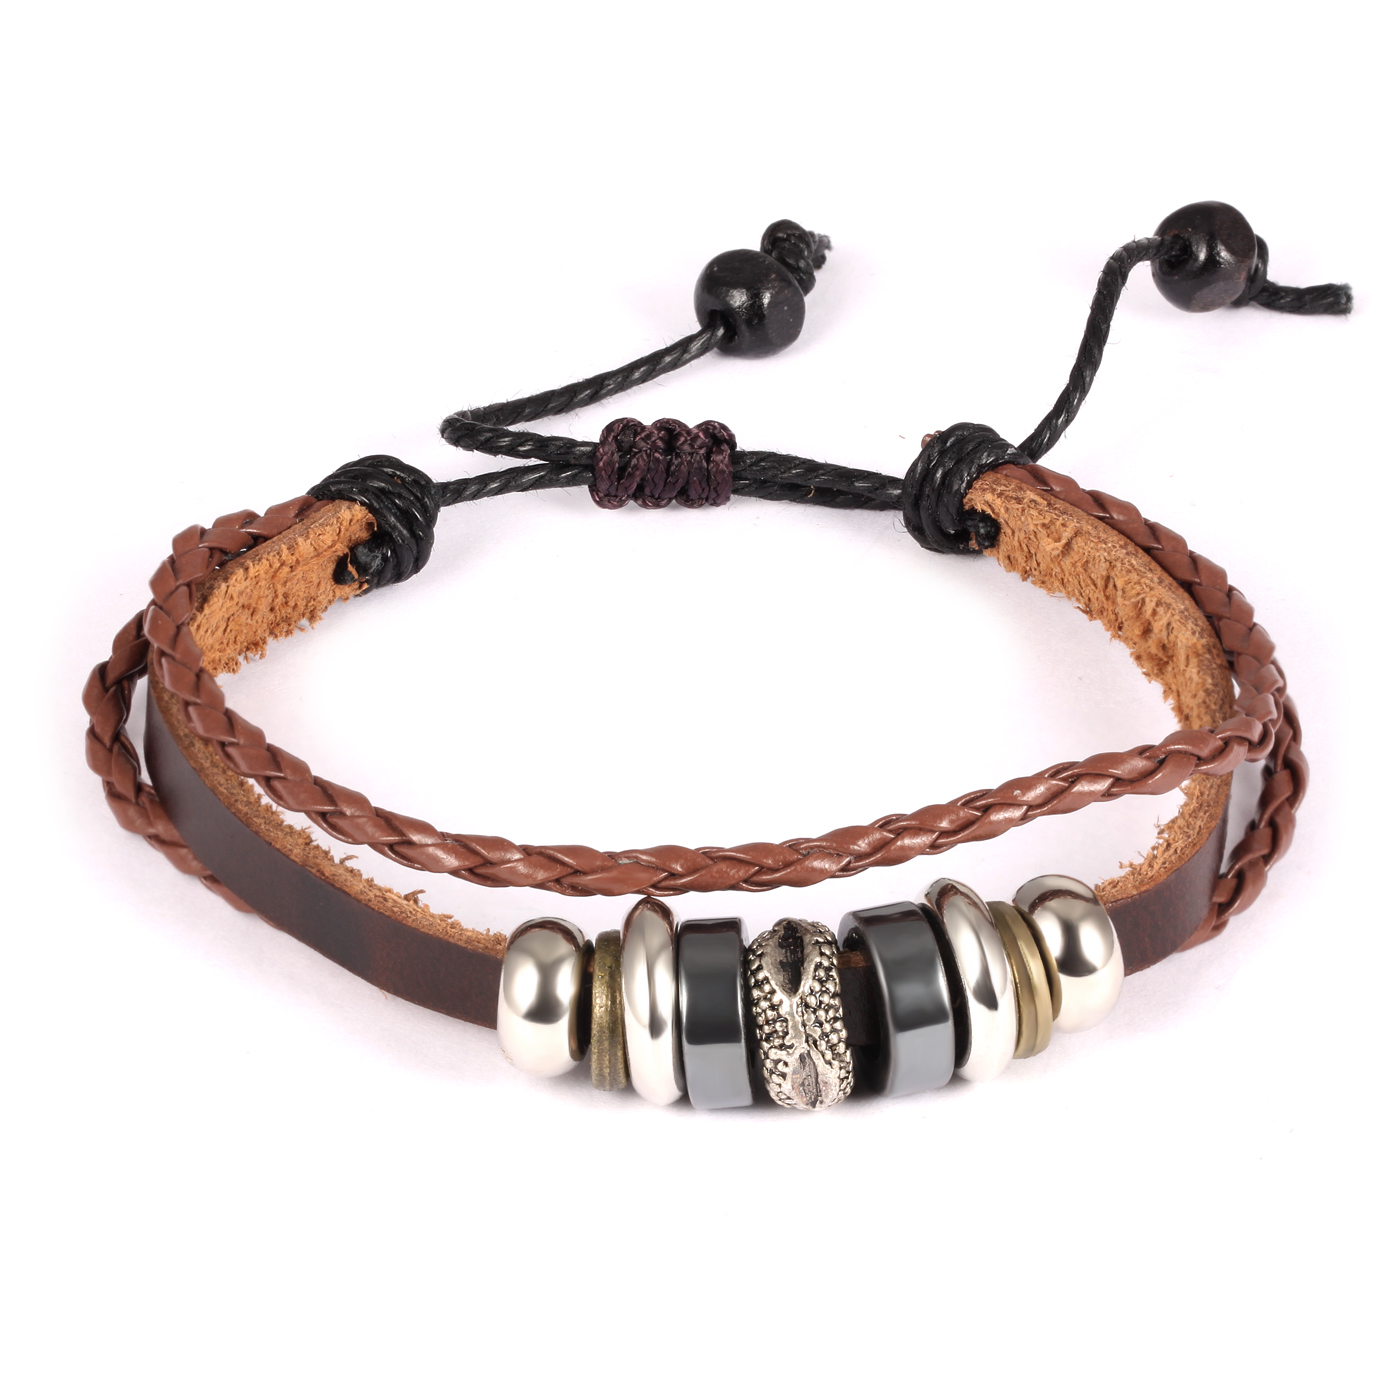 Punk Handmade Leather Man's Wrap Bracelets Casual Adjustable Pu Leather  Sports Men Jewelry Cool Wristband(